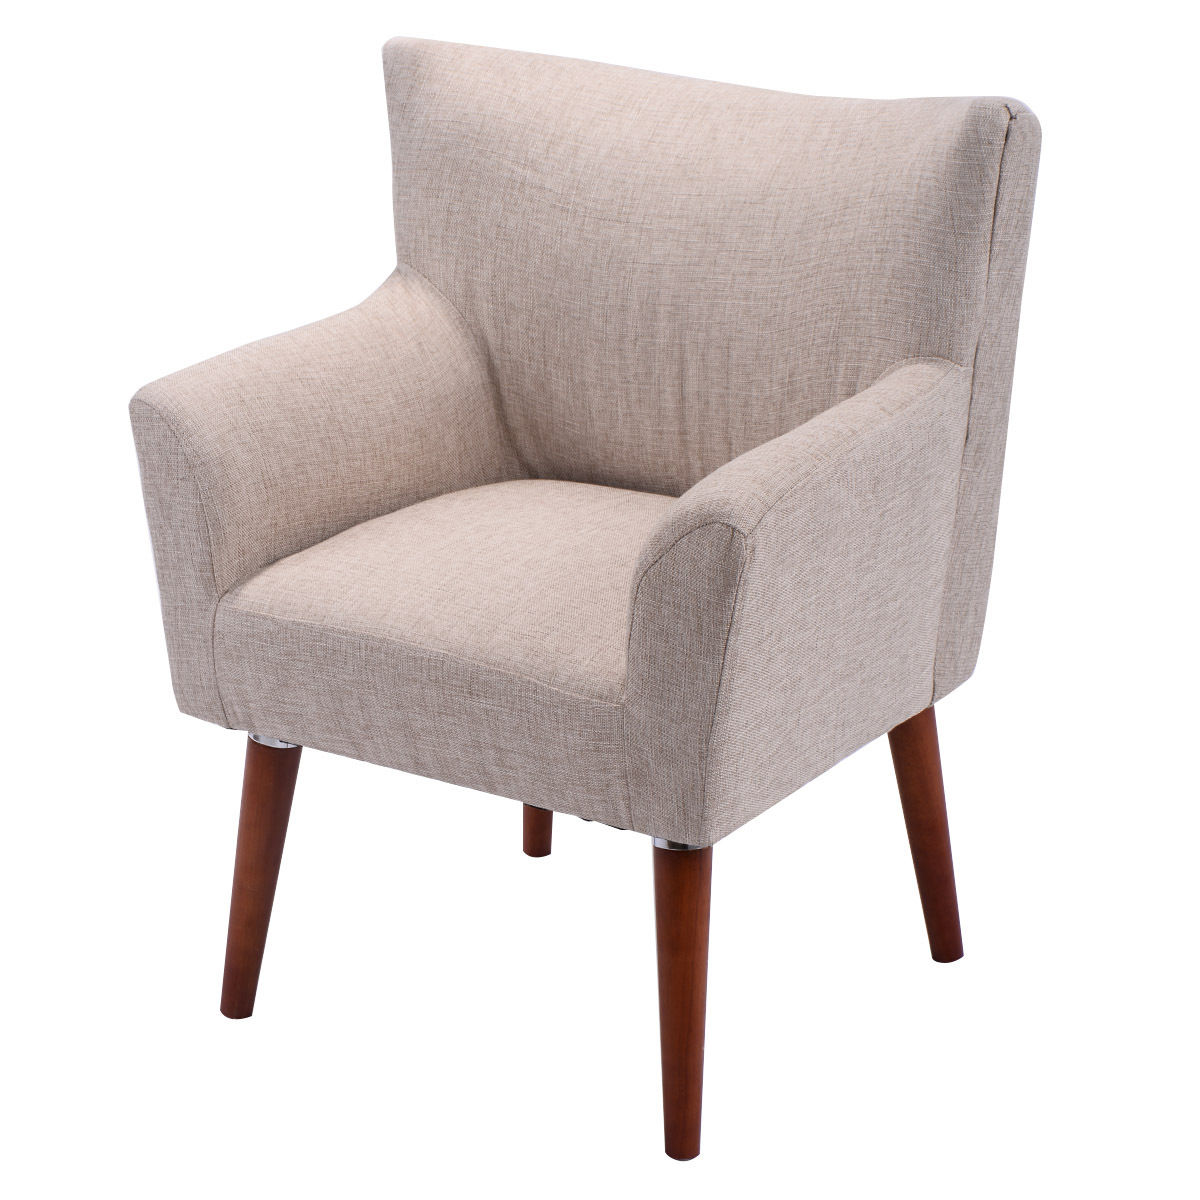 sofa chair costway leisure arm chair single couch seat home garden living room  furniture YRFXMTC